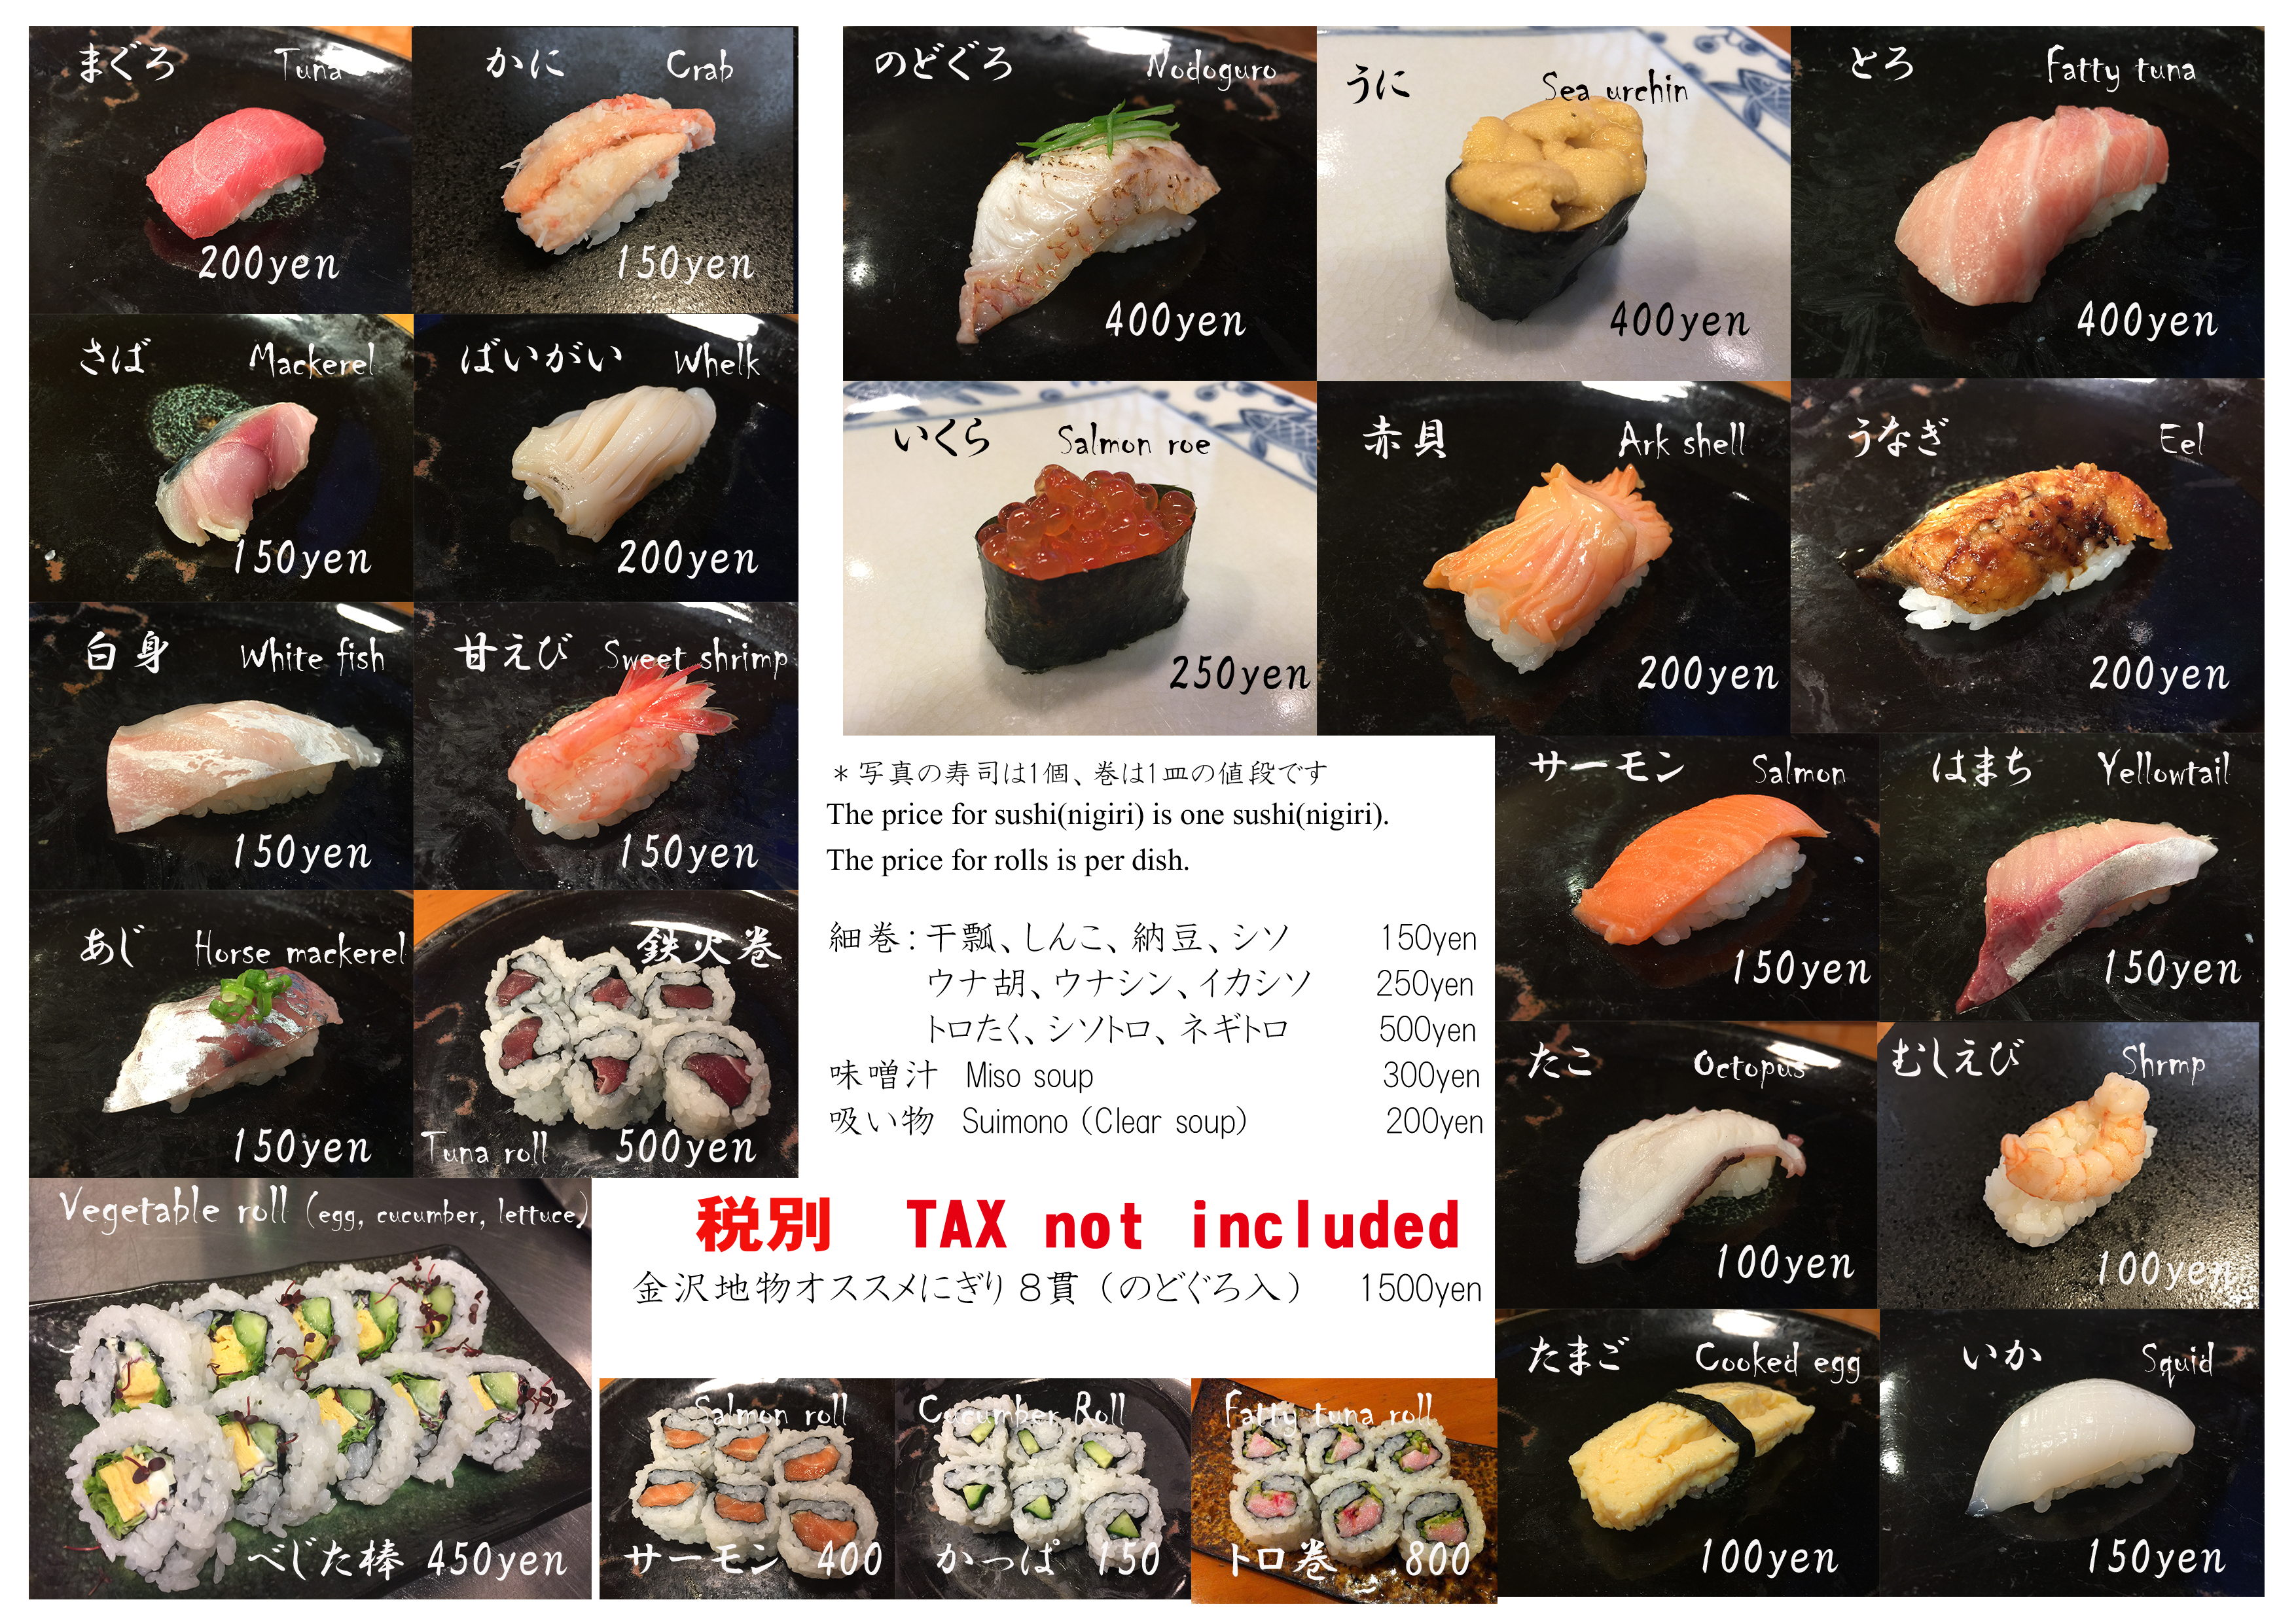 case study on the 100 yen sushi house Operations management is a field of study that focuses on the efficient a variety of work is expected, including written case 4 100 yen sushi house 5.